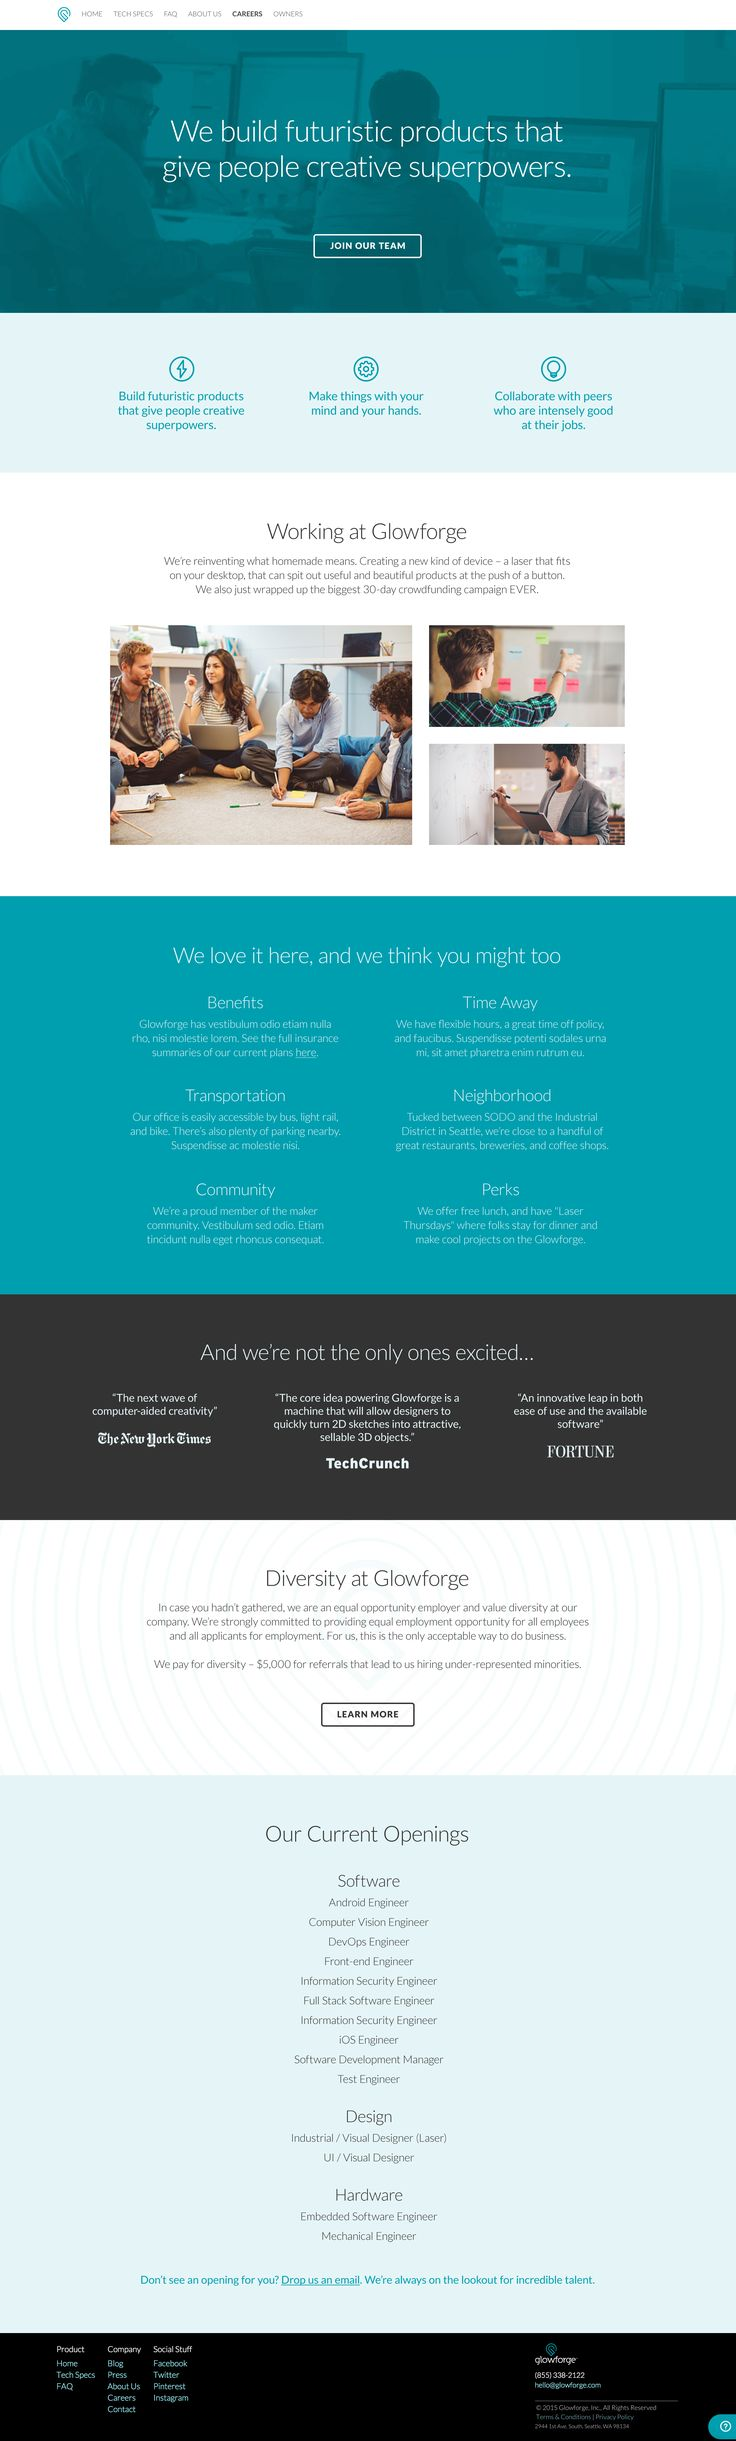 best images about ui careers list behance sorry you ve been rate limited see more